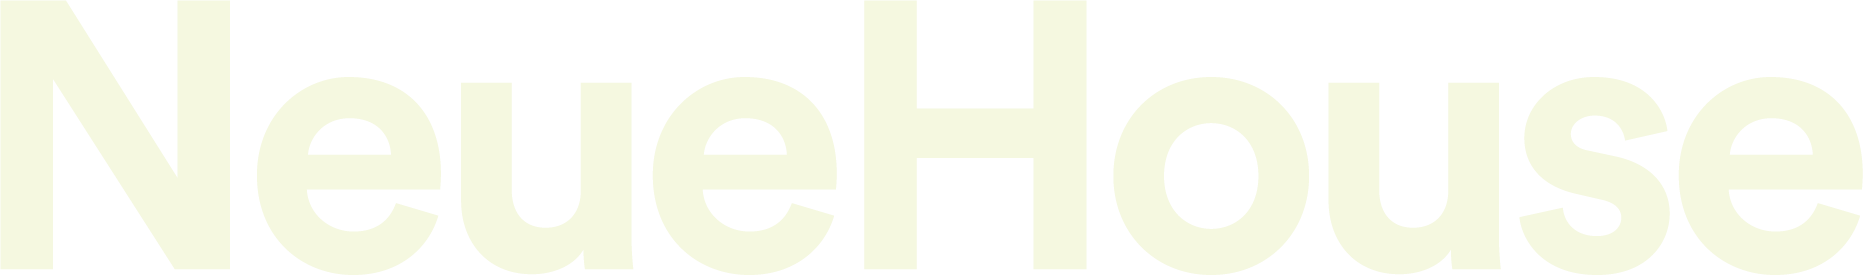 NeueHouse Monogram Logo